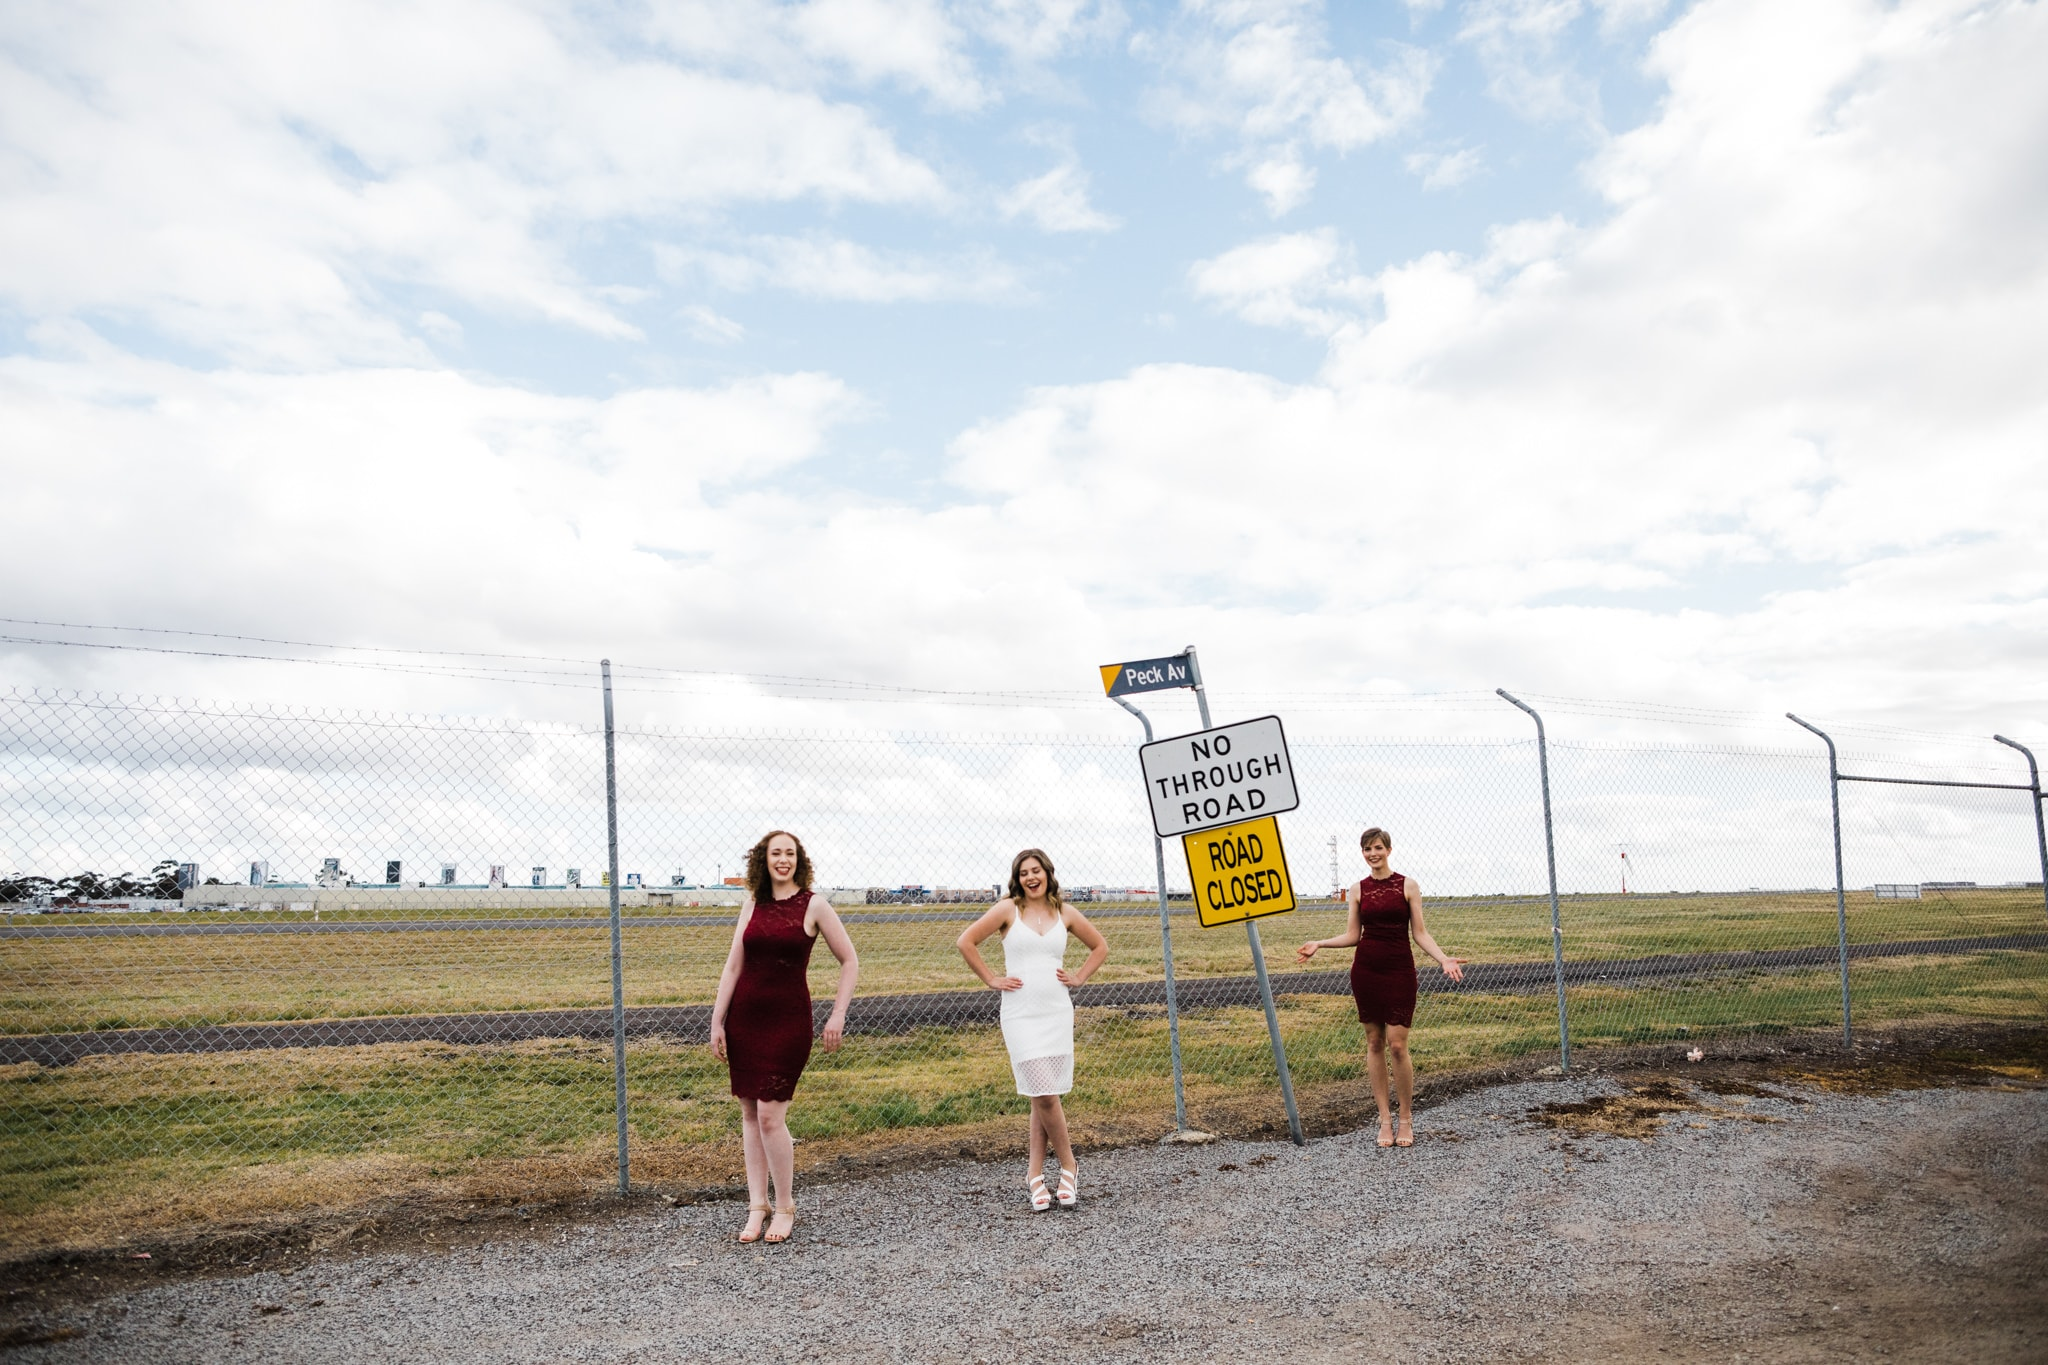 essondon airport wedding photographer melbourne